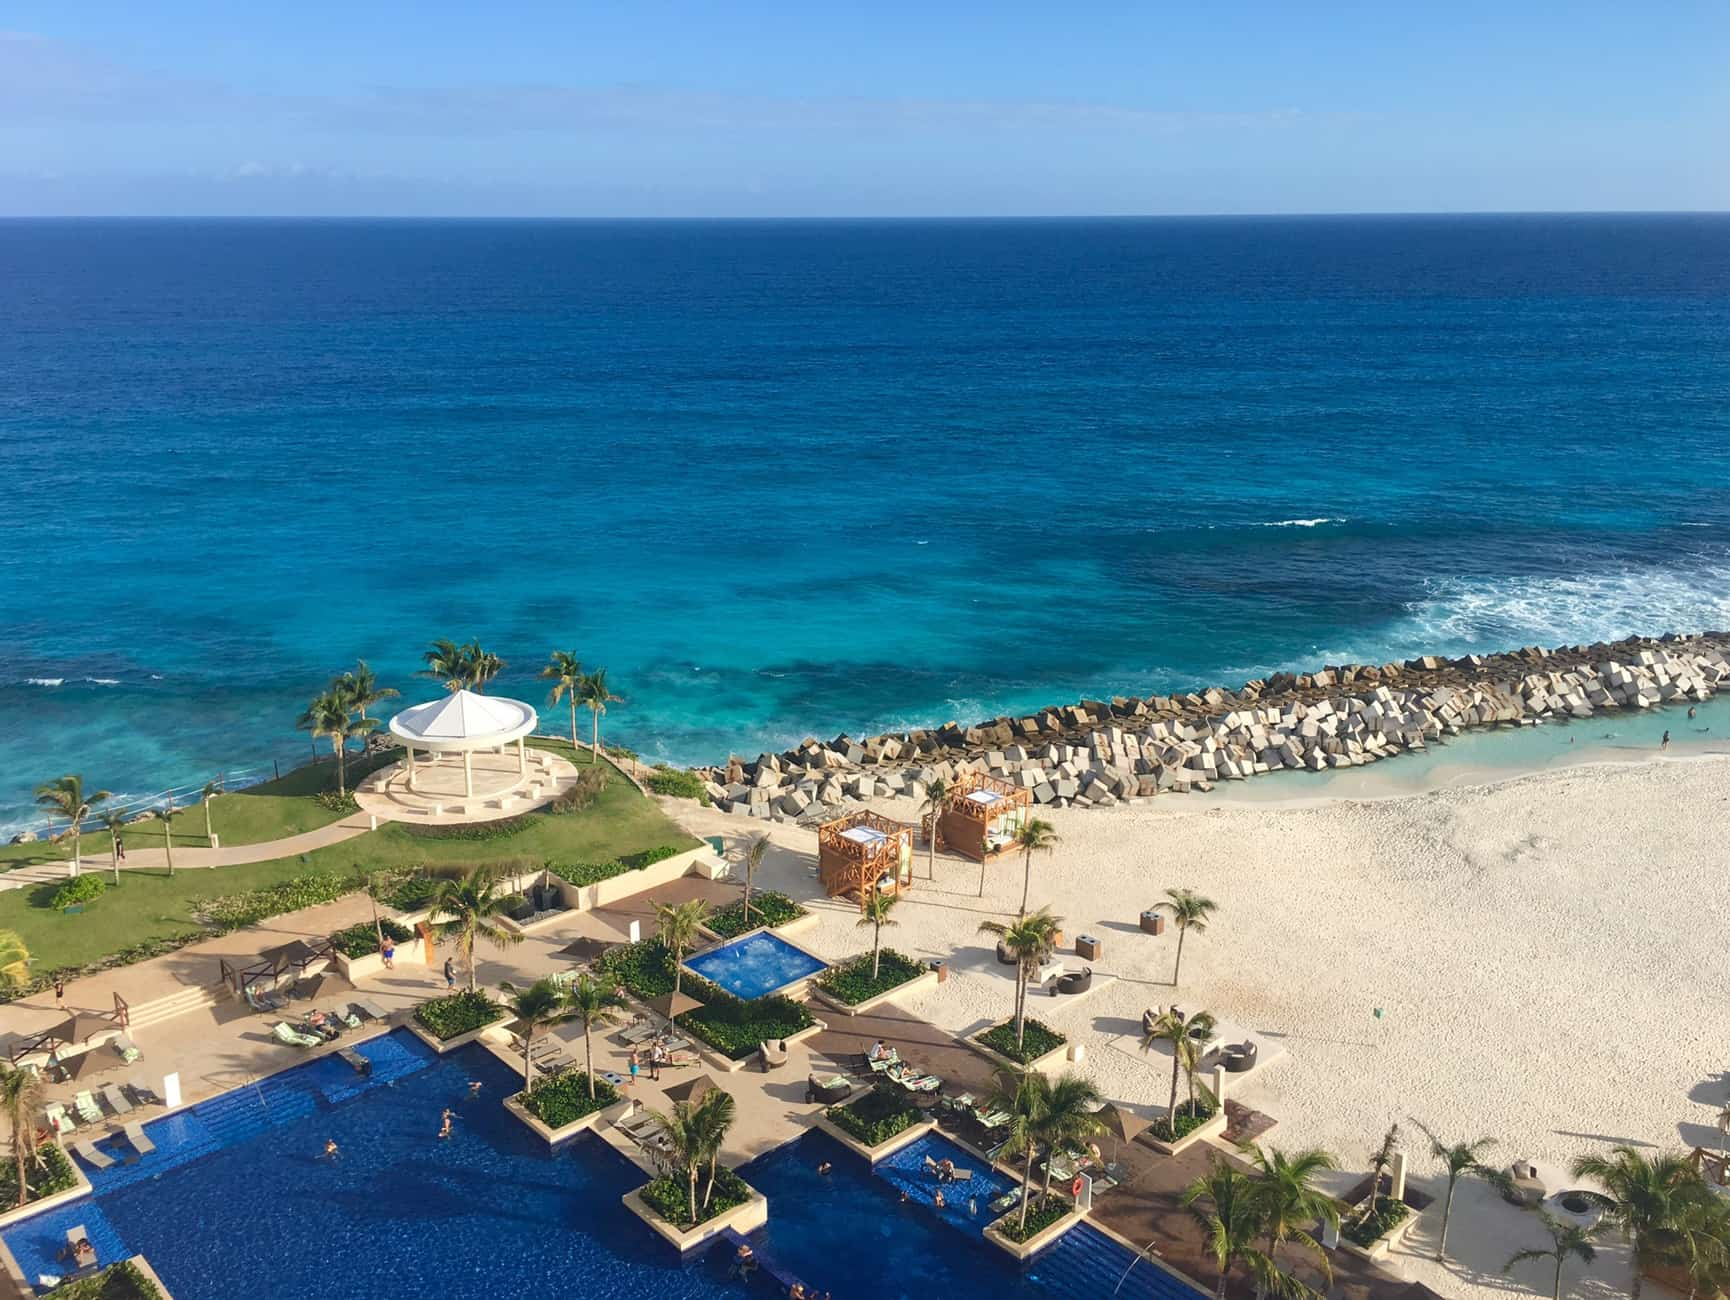 Vs Riviera Maya Whats The Difference Where To Go In Mexico - Where is cancun